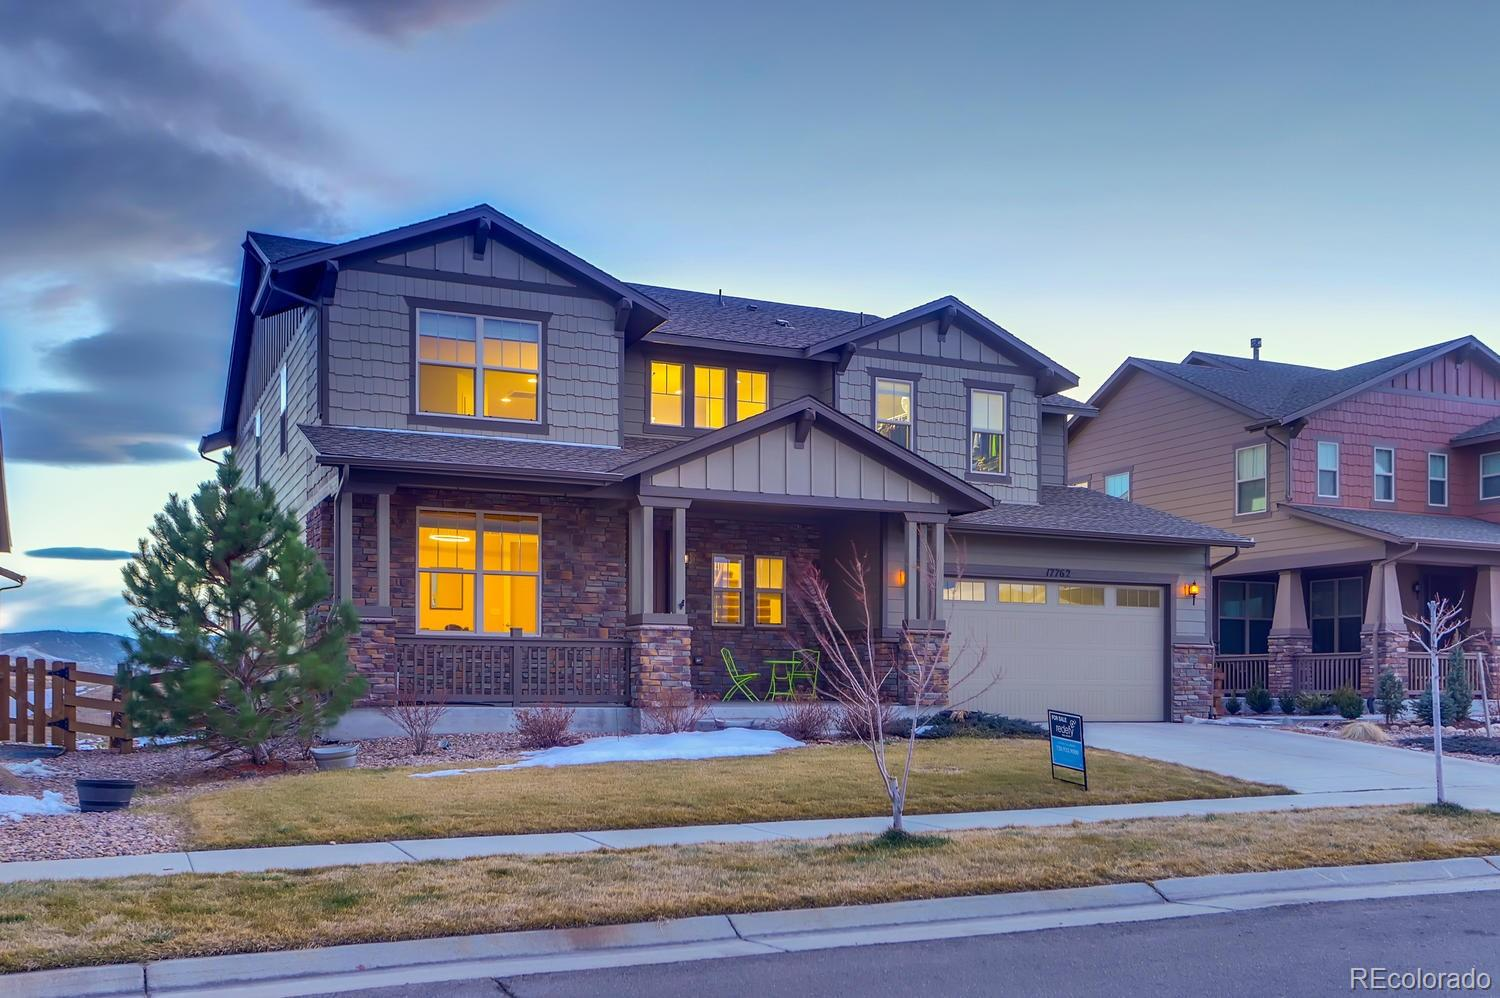 MLS# 4767152 - 3 - 17762 W 83rd Place, Arvada, CO 80007